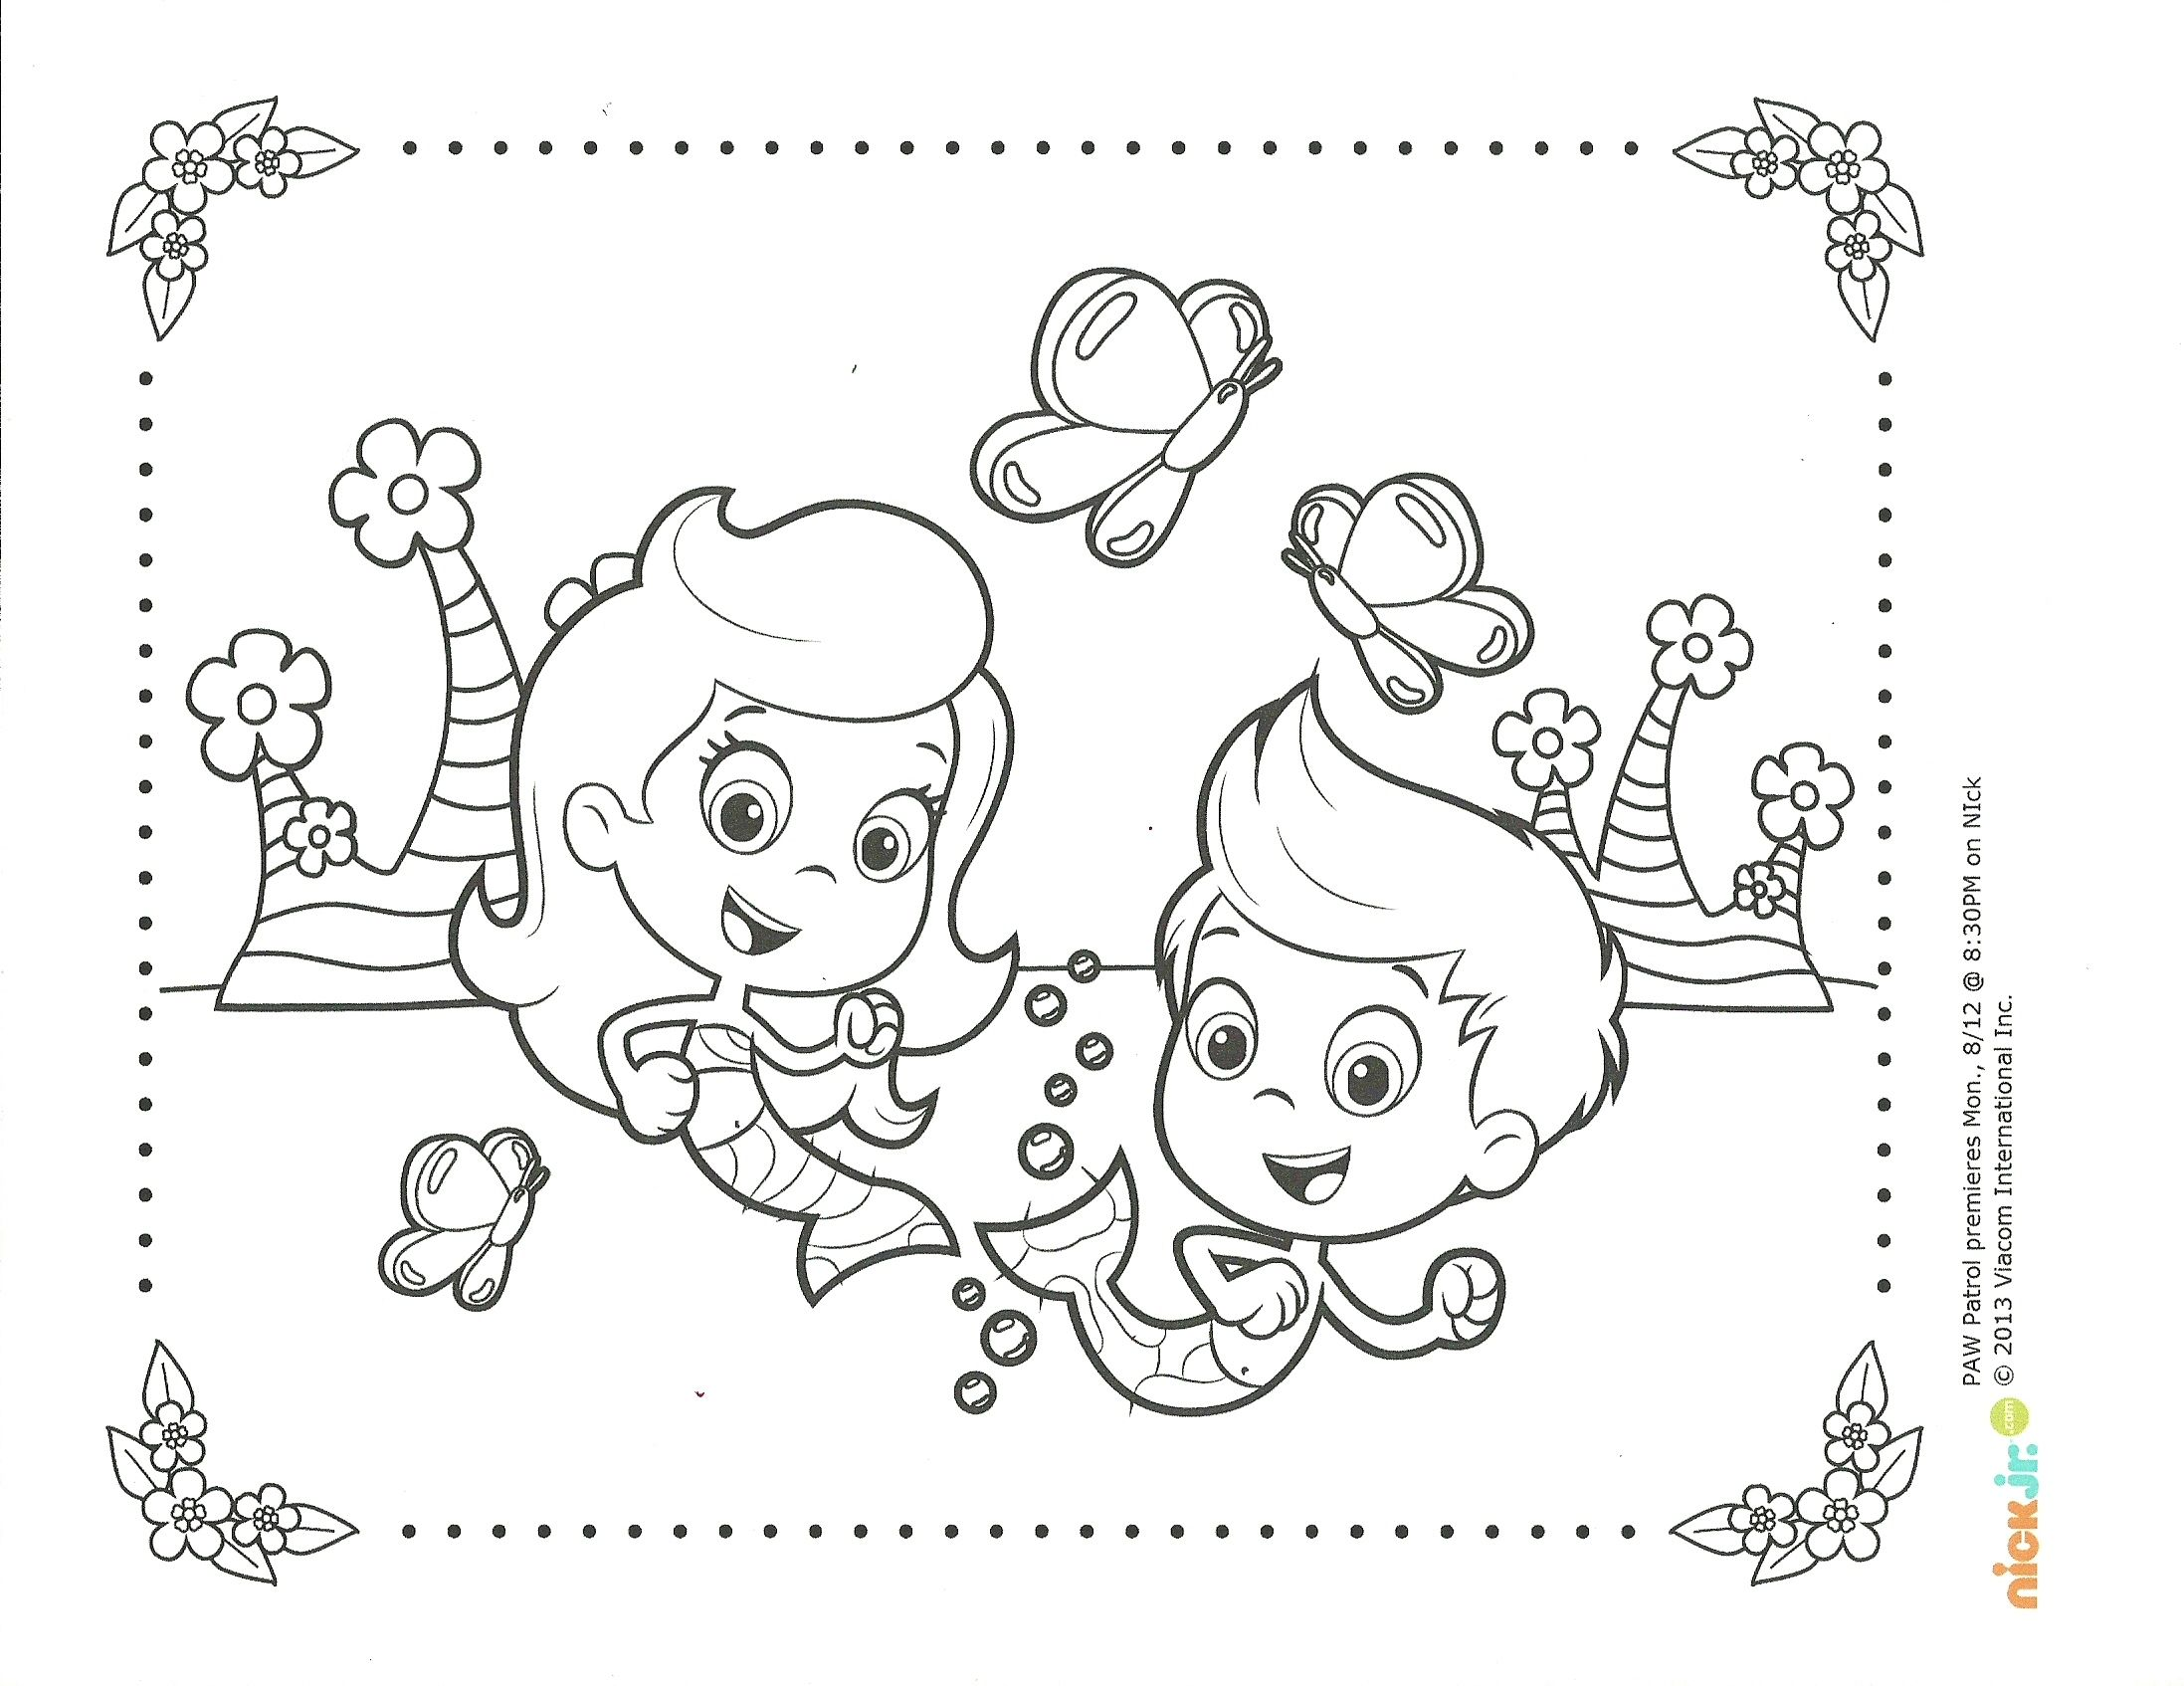 Bubble Guppies Springtime Coloring Page | Kid\'s Room | Pinterest